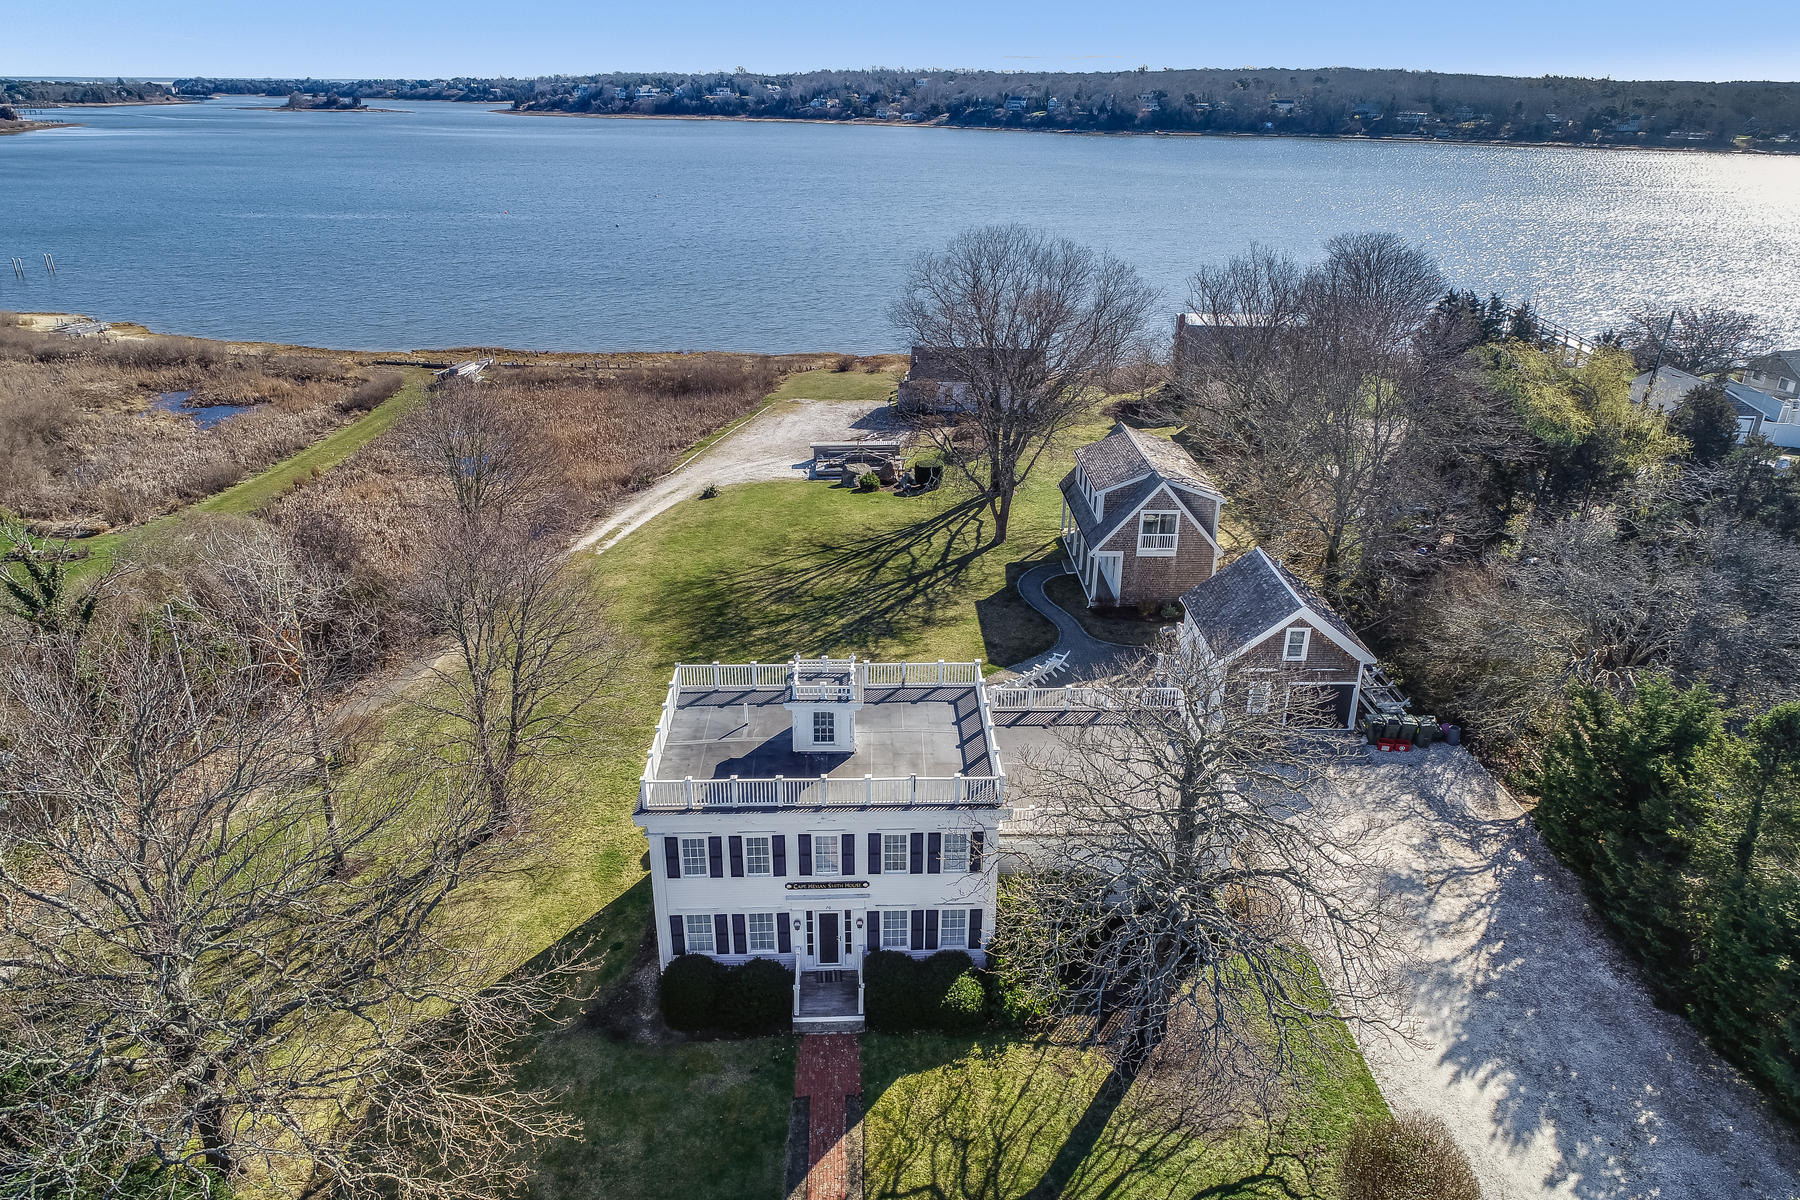 70 & 76 Old State Highway, Eastham MA, 02642 details